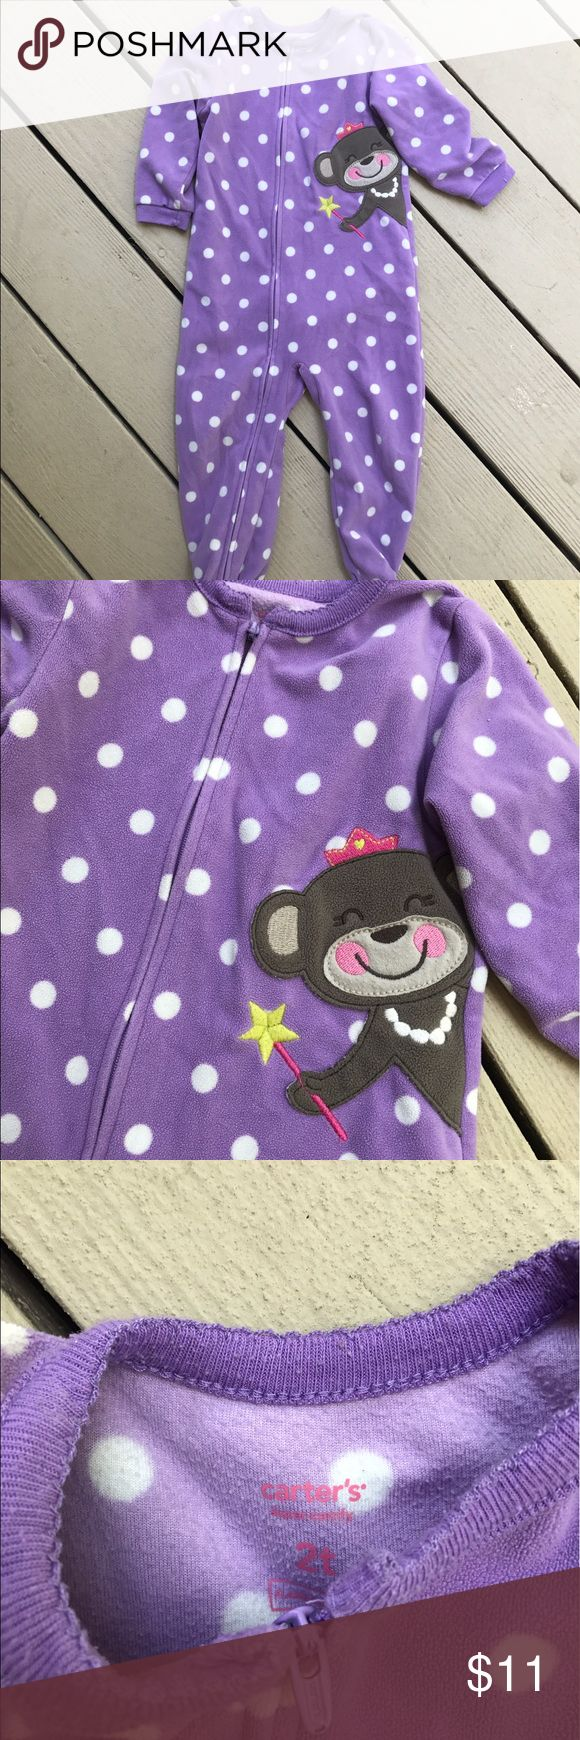 Carter's Purple Polka Dot Pajamas Darling! Your little one will love these Pajamas. Easy to zip up front and footies at the bottom. Good condition. Bundle with my other kids items and save with bundle discount 💰💰 Carter's Pajamas